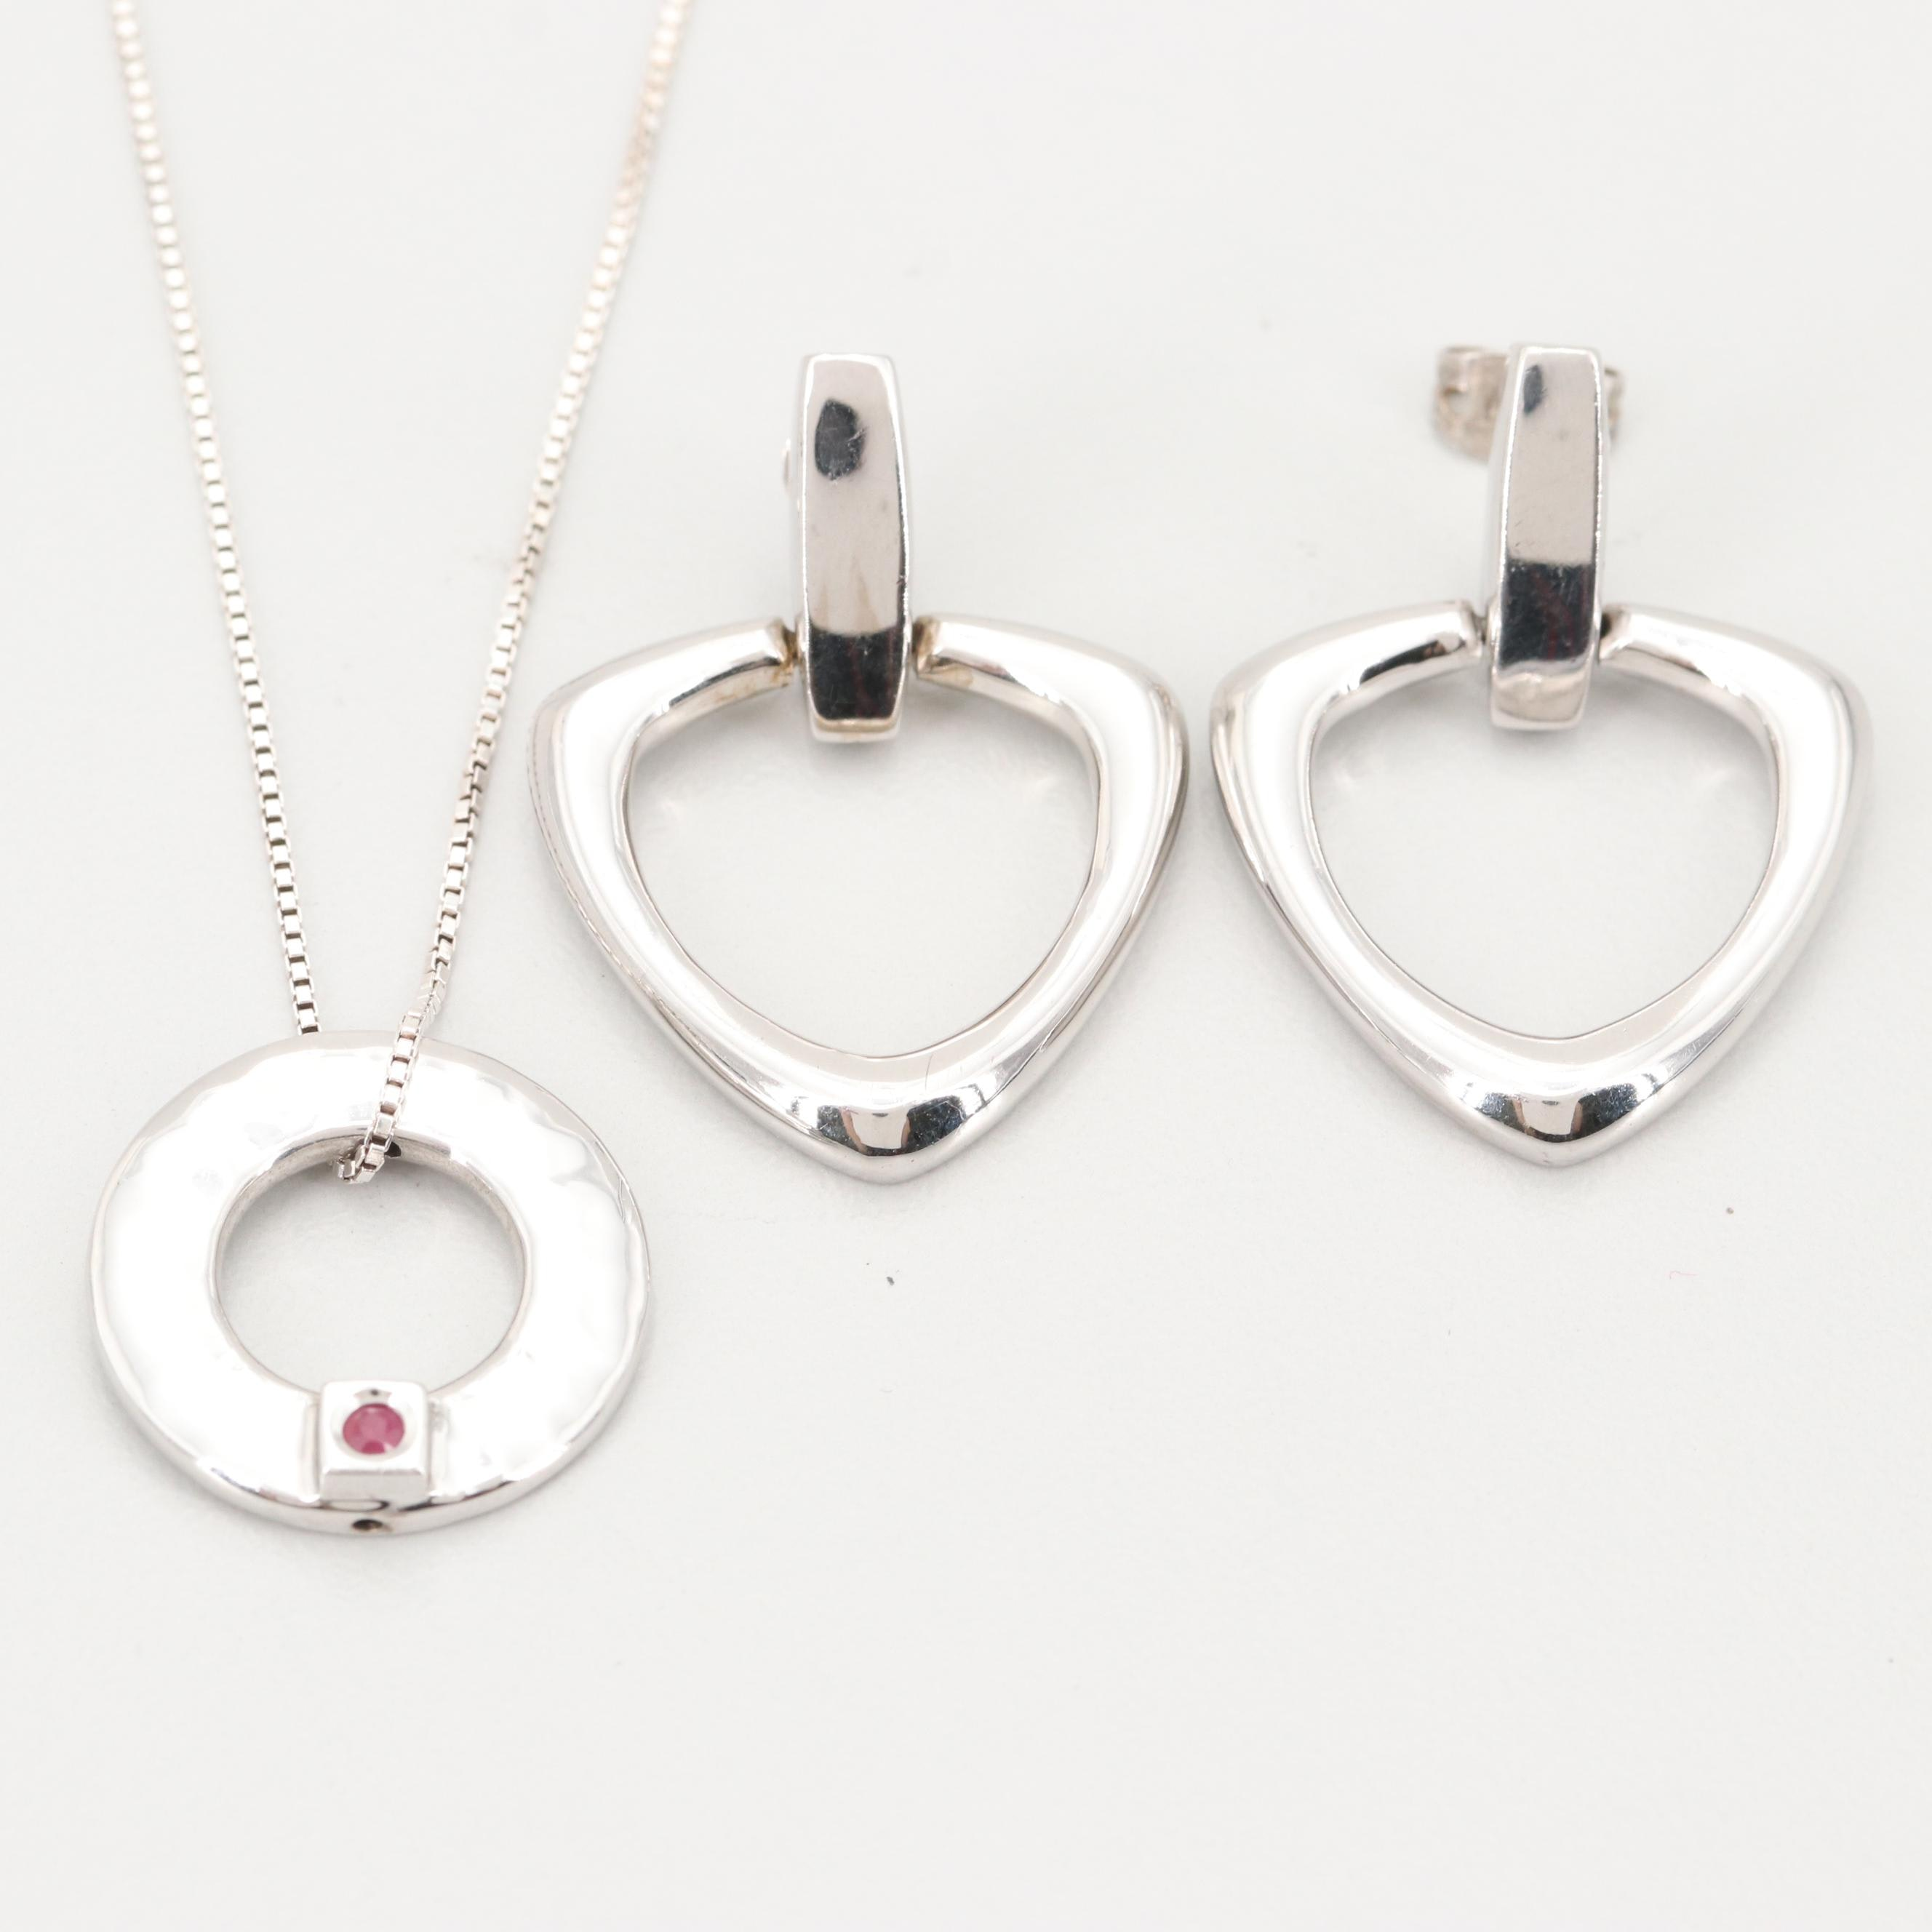 Elle Sterling Silver and Ruby Necklace and Earrings